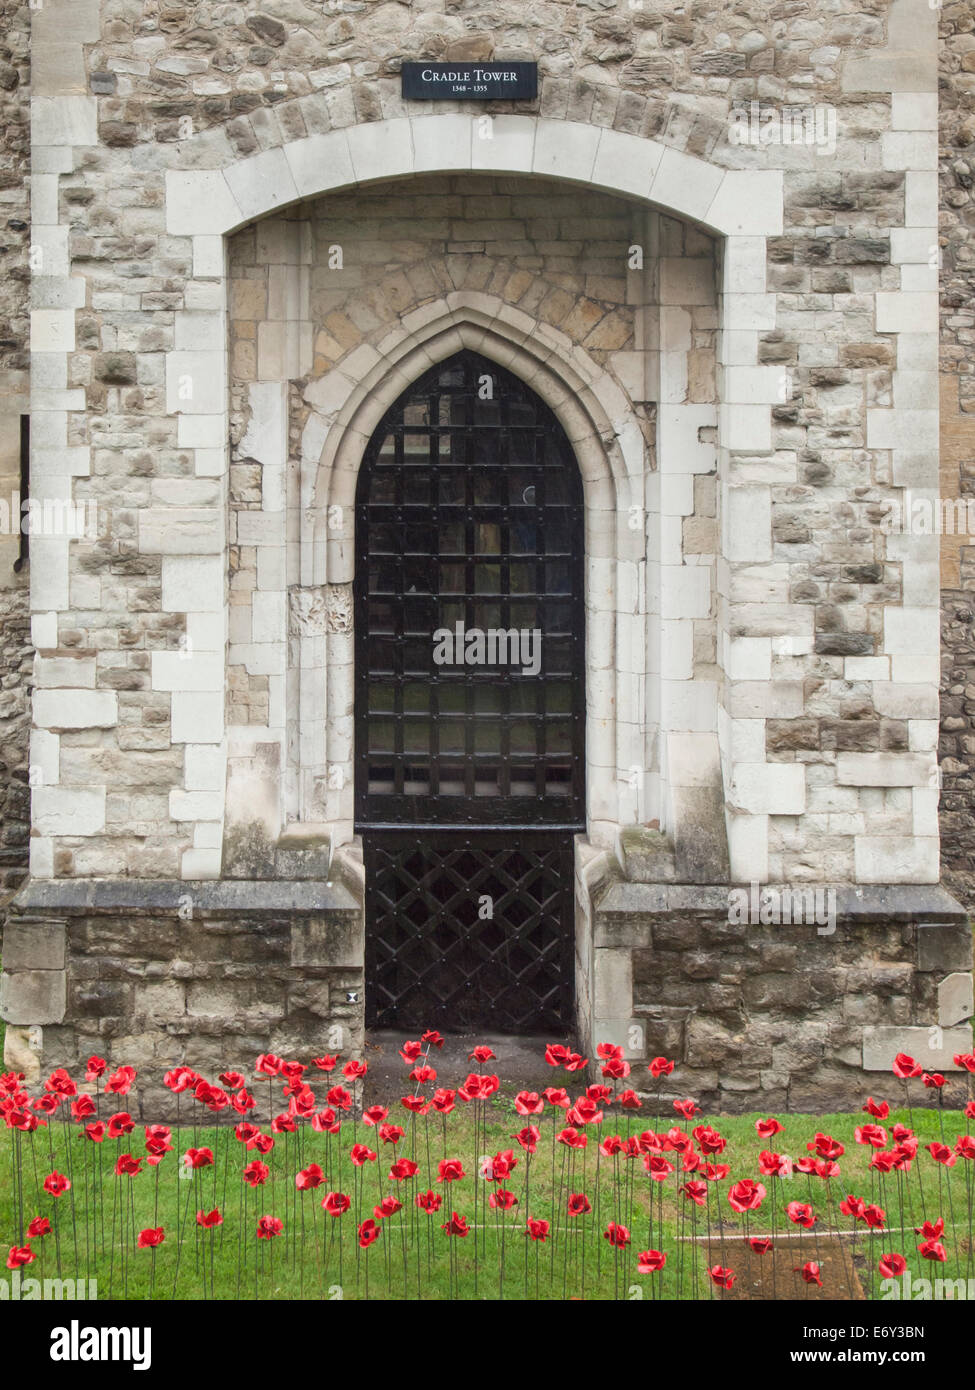 detail of the ceramic poppies exhibit  at the tower of london during heavy rain with the cradle tower  behind . Stock Photo